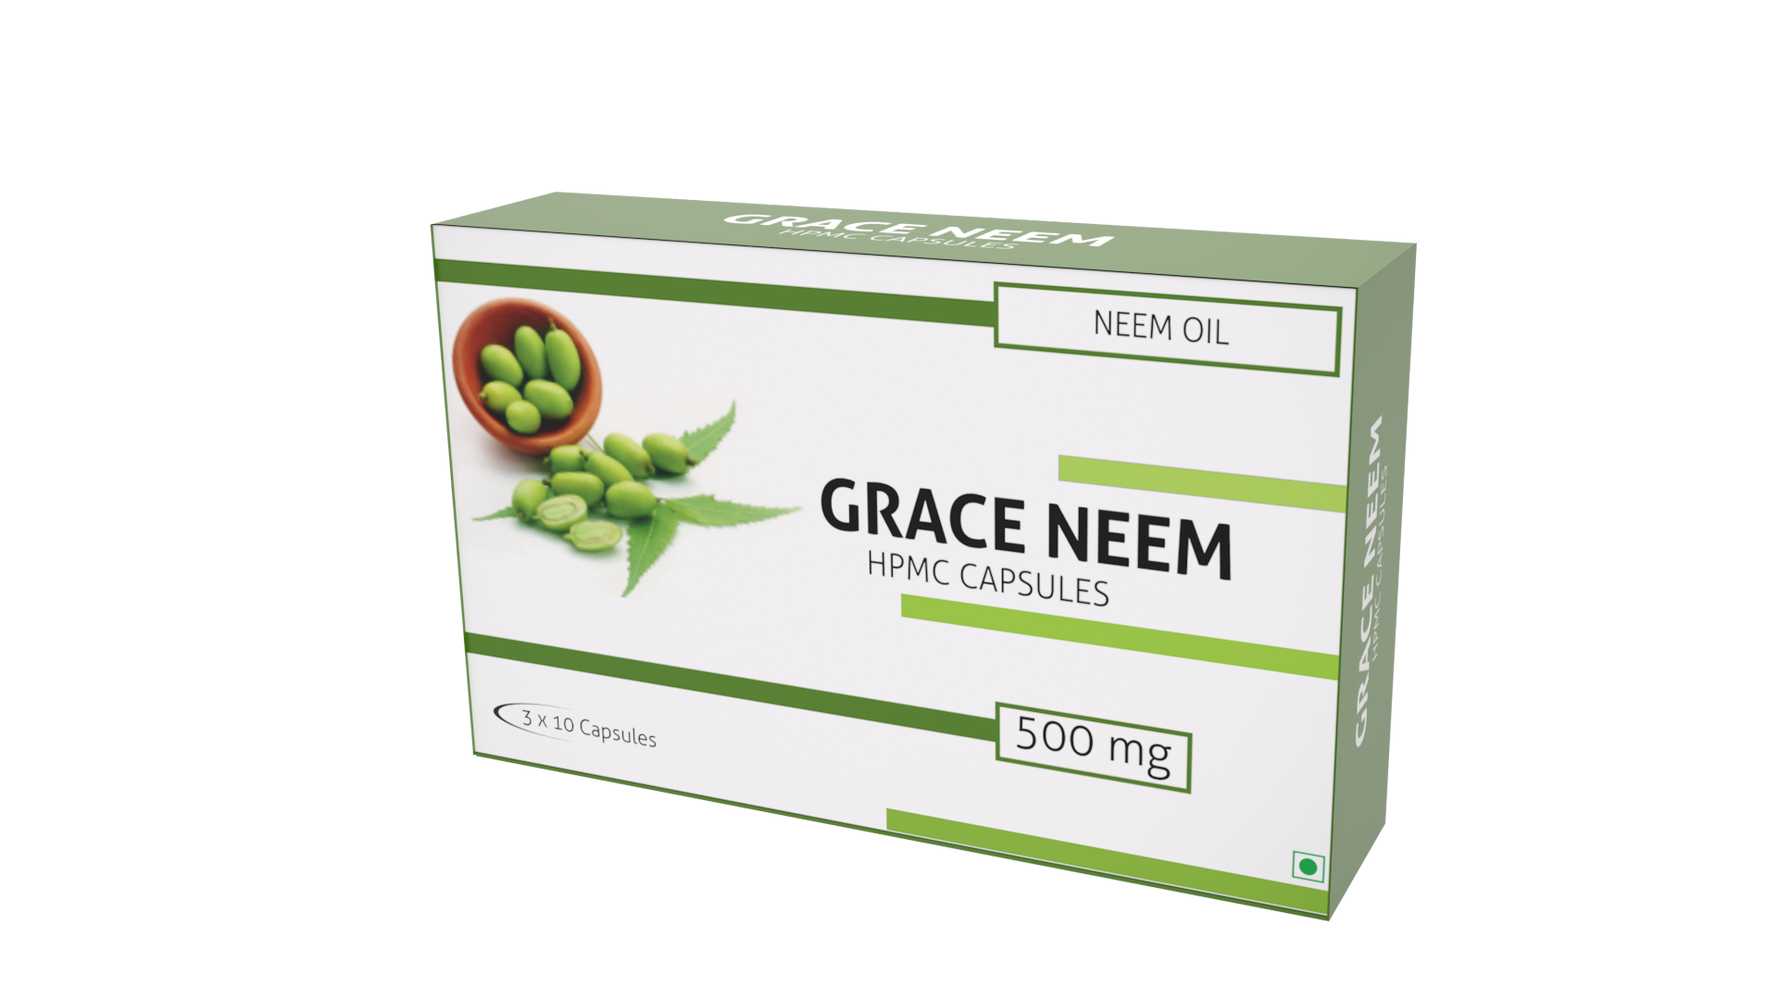 Nutra Grace Grace Neem 30 Capsules - NutraC - Health & Nutrition Store